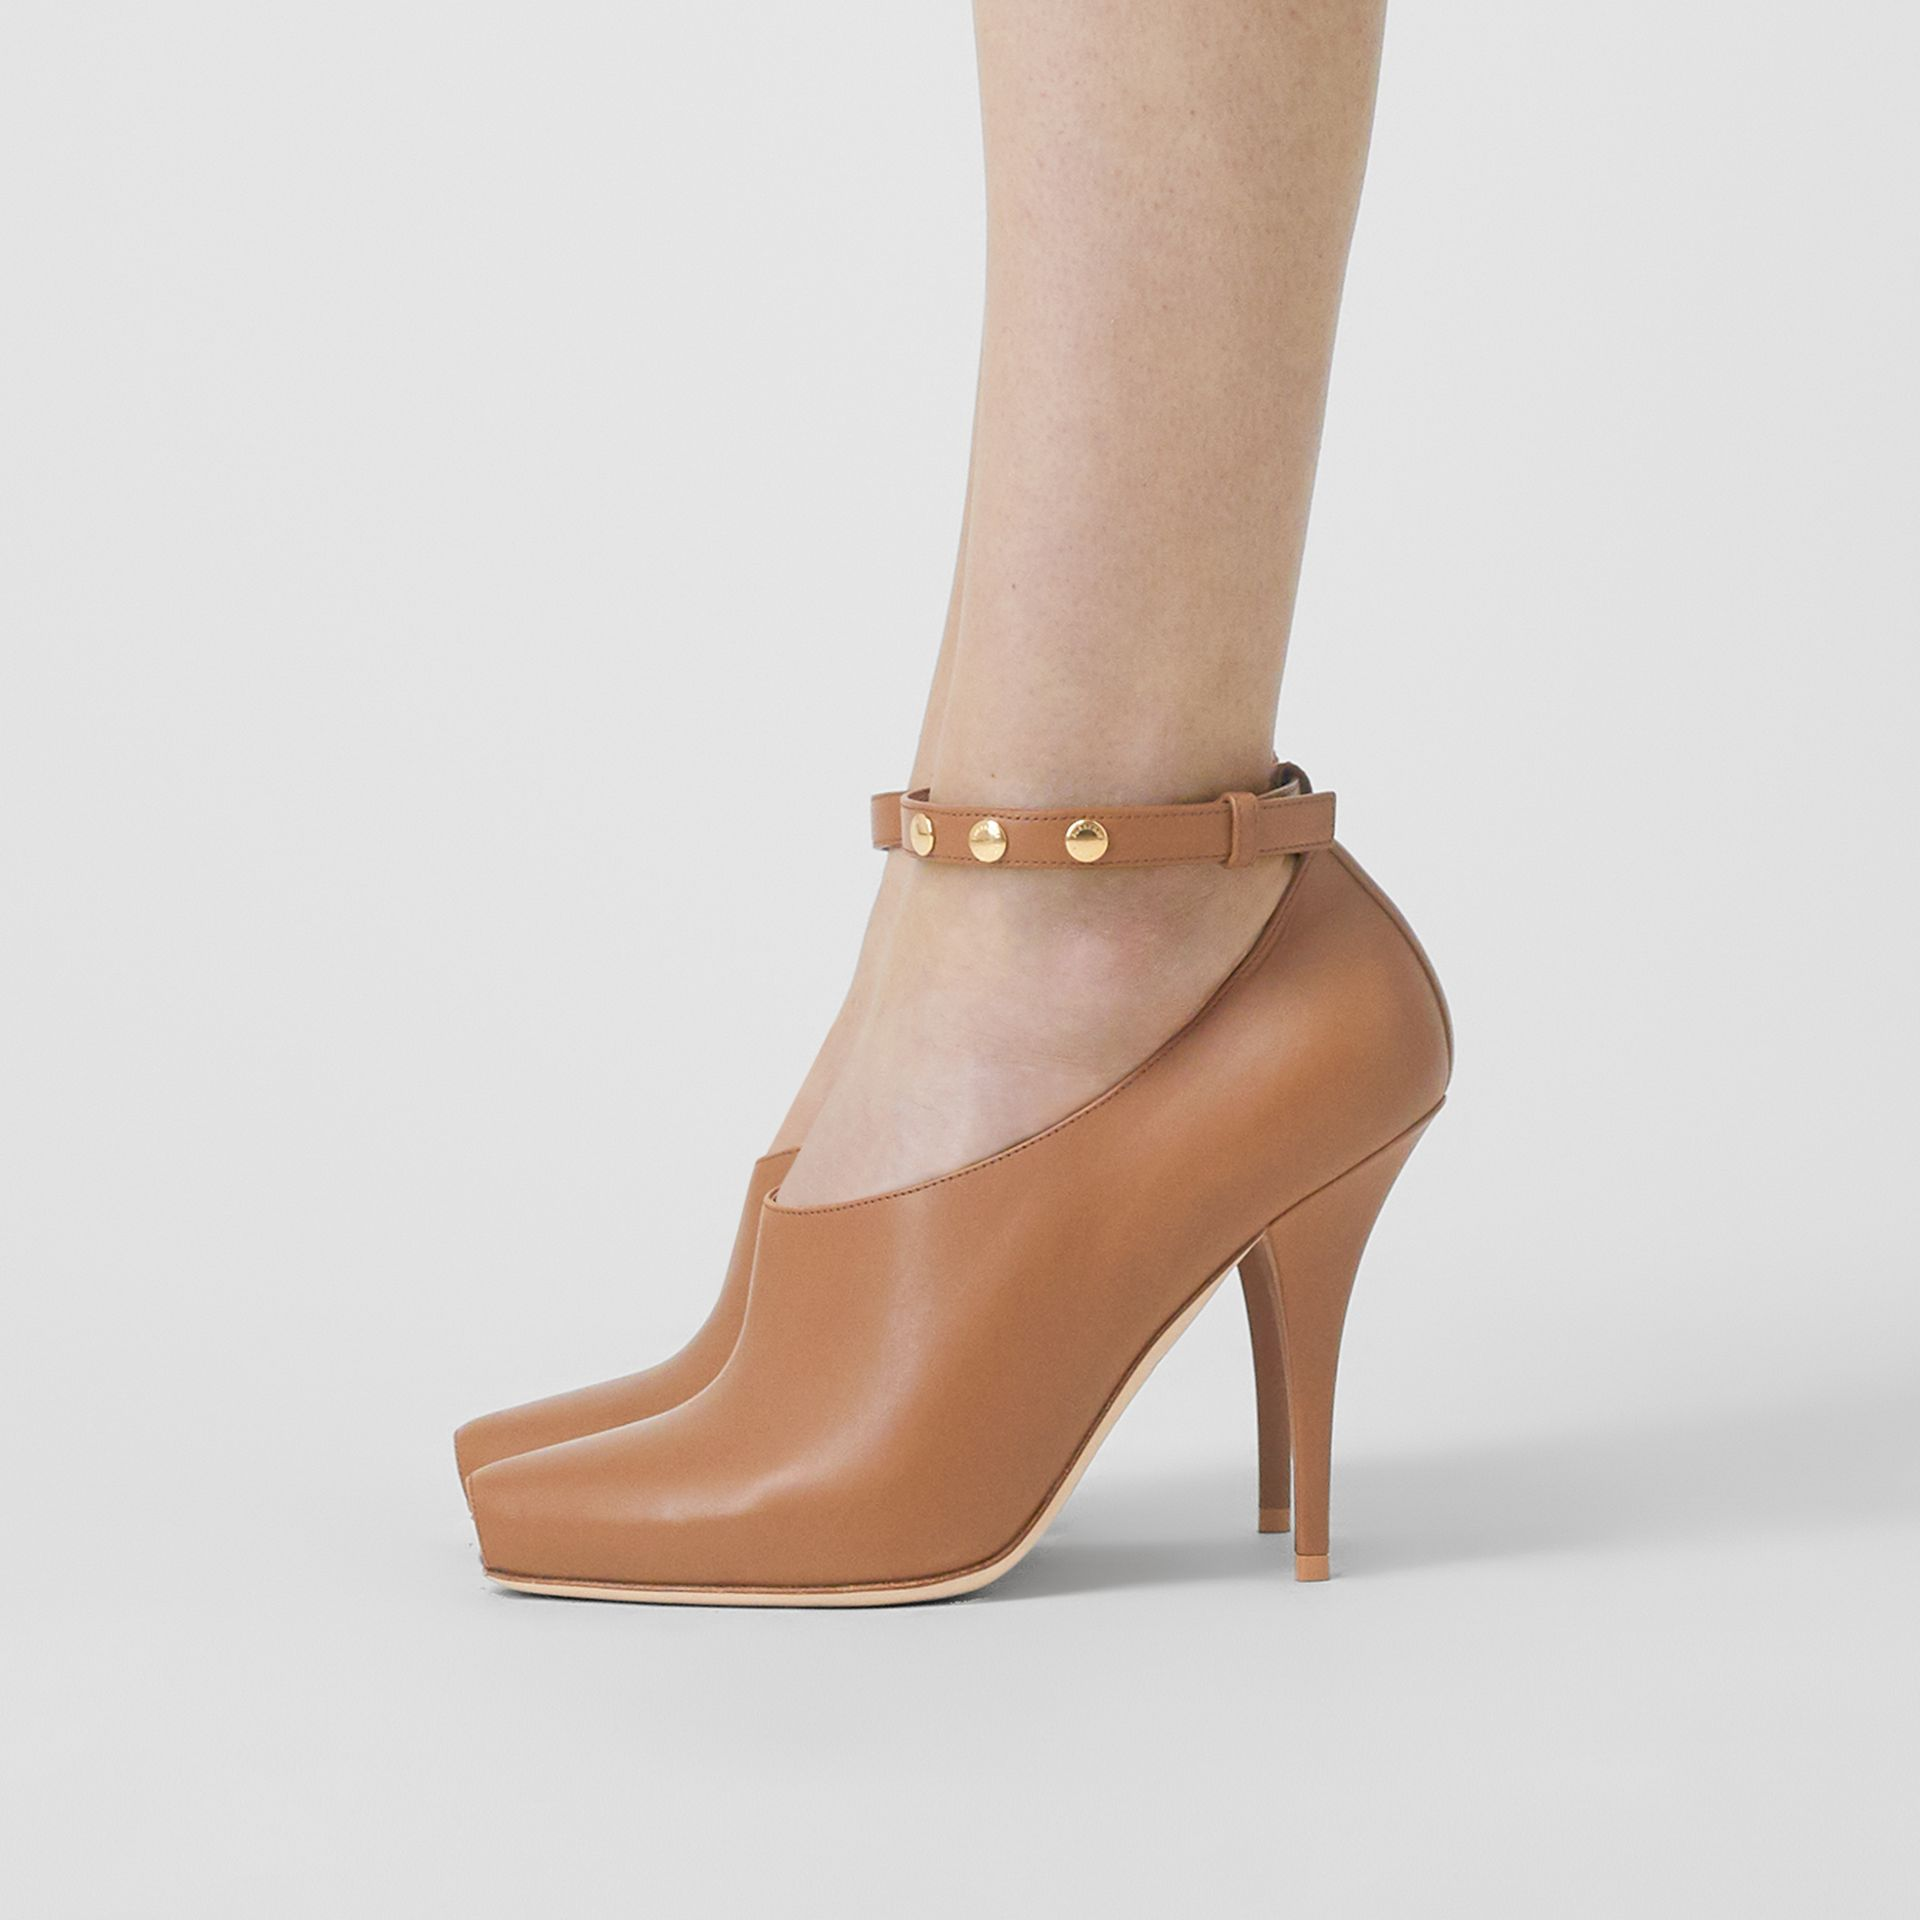 Leather Peep-toe Pumps in Amber Brown - Women | Burberry United Kingdom - gallery image 2